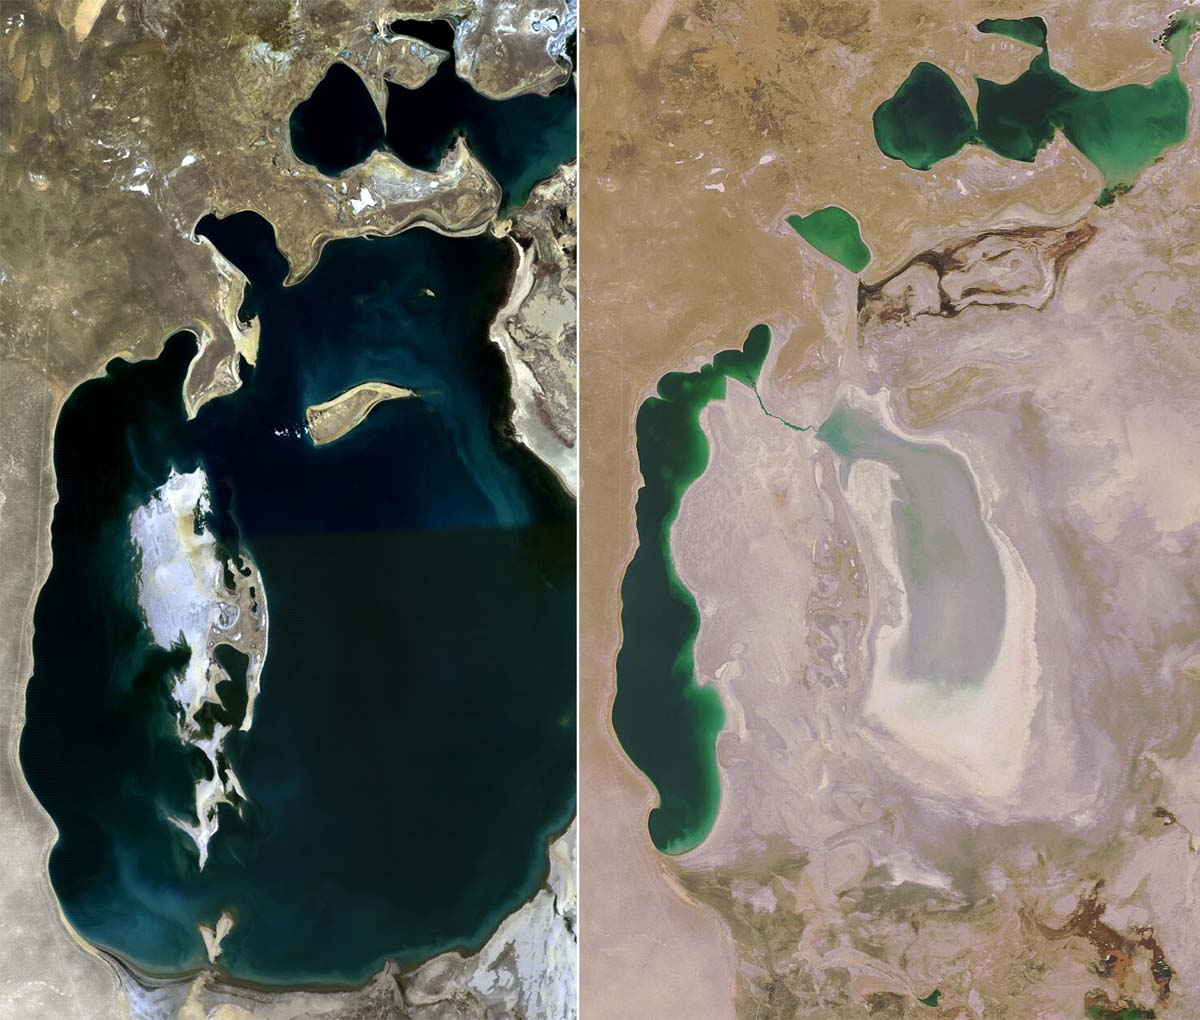 The Aral Sea in 1989 (left) and 2008 (right)